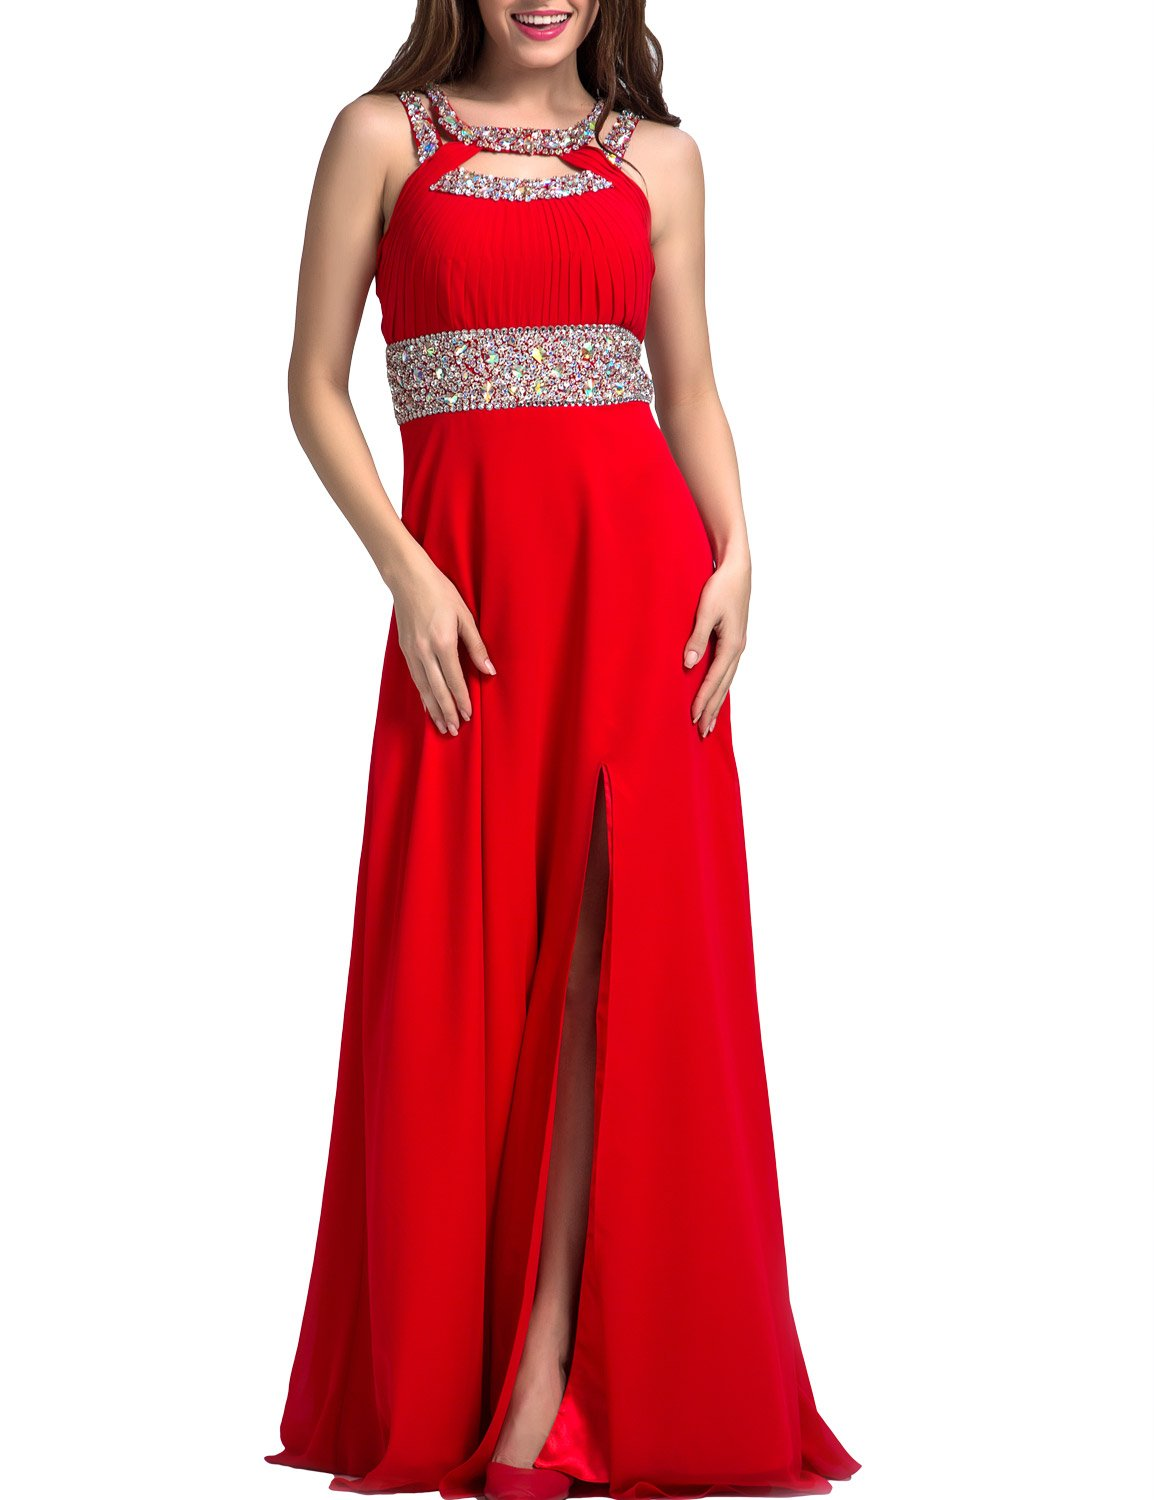 SeasonMall Women's A Line Scoop Prom Dress Open Back Size 8 US Red by SeasonMall